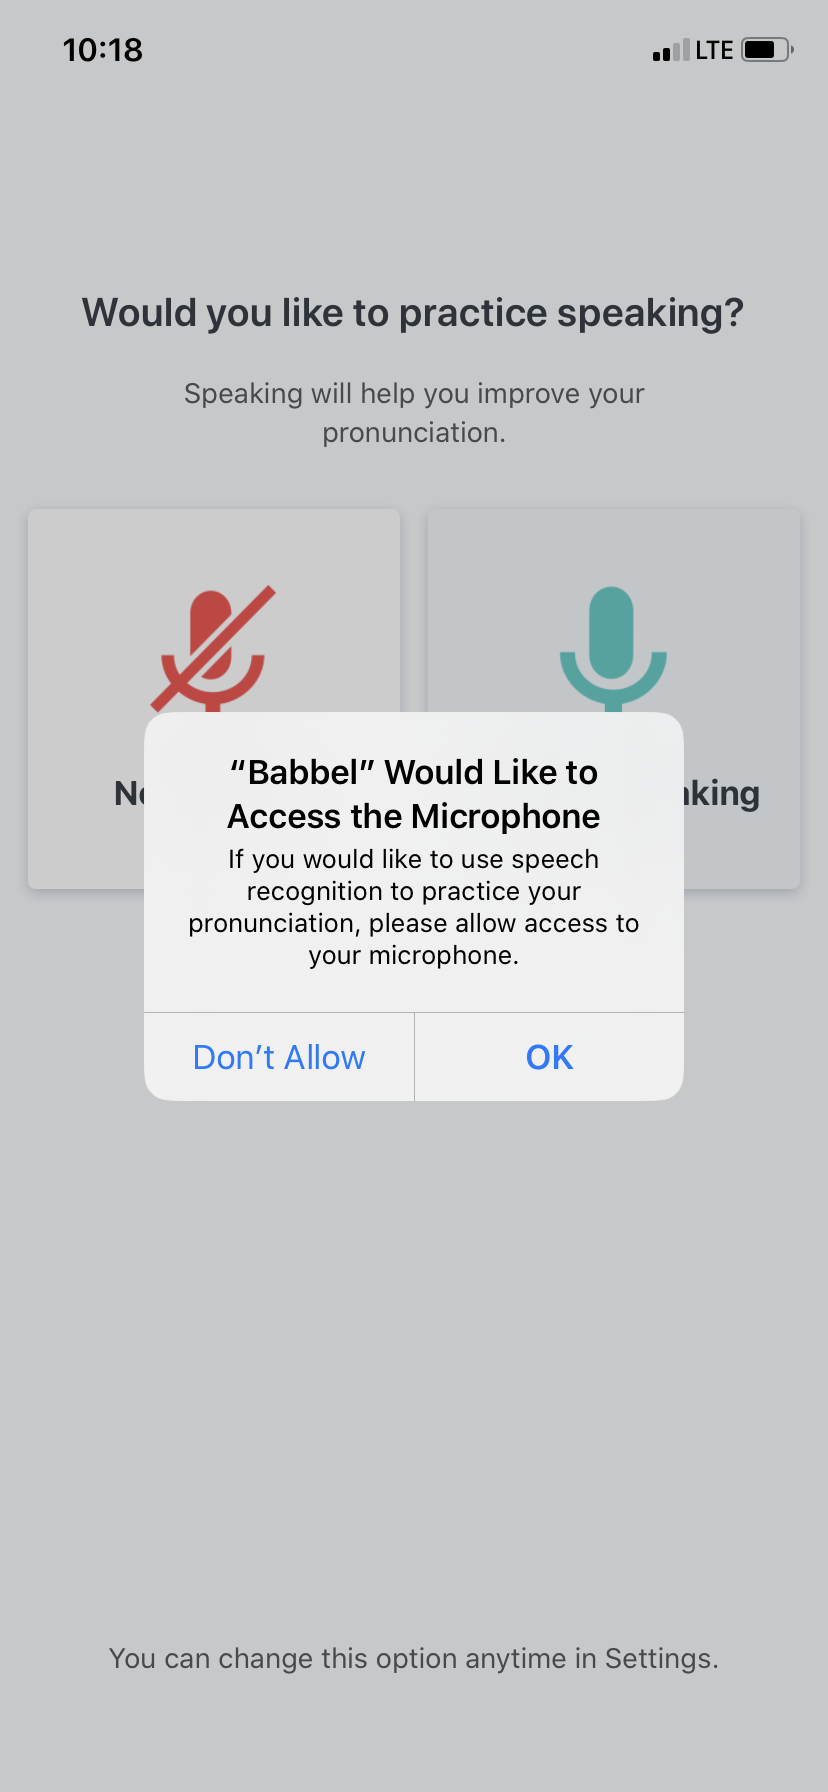 babbel microphone access permission priming context and mobile modal